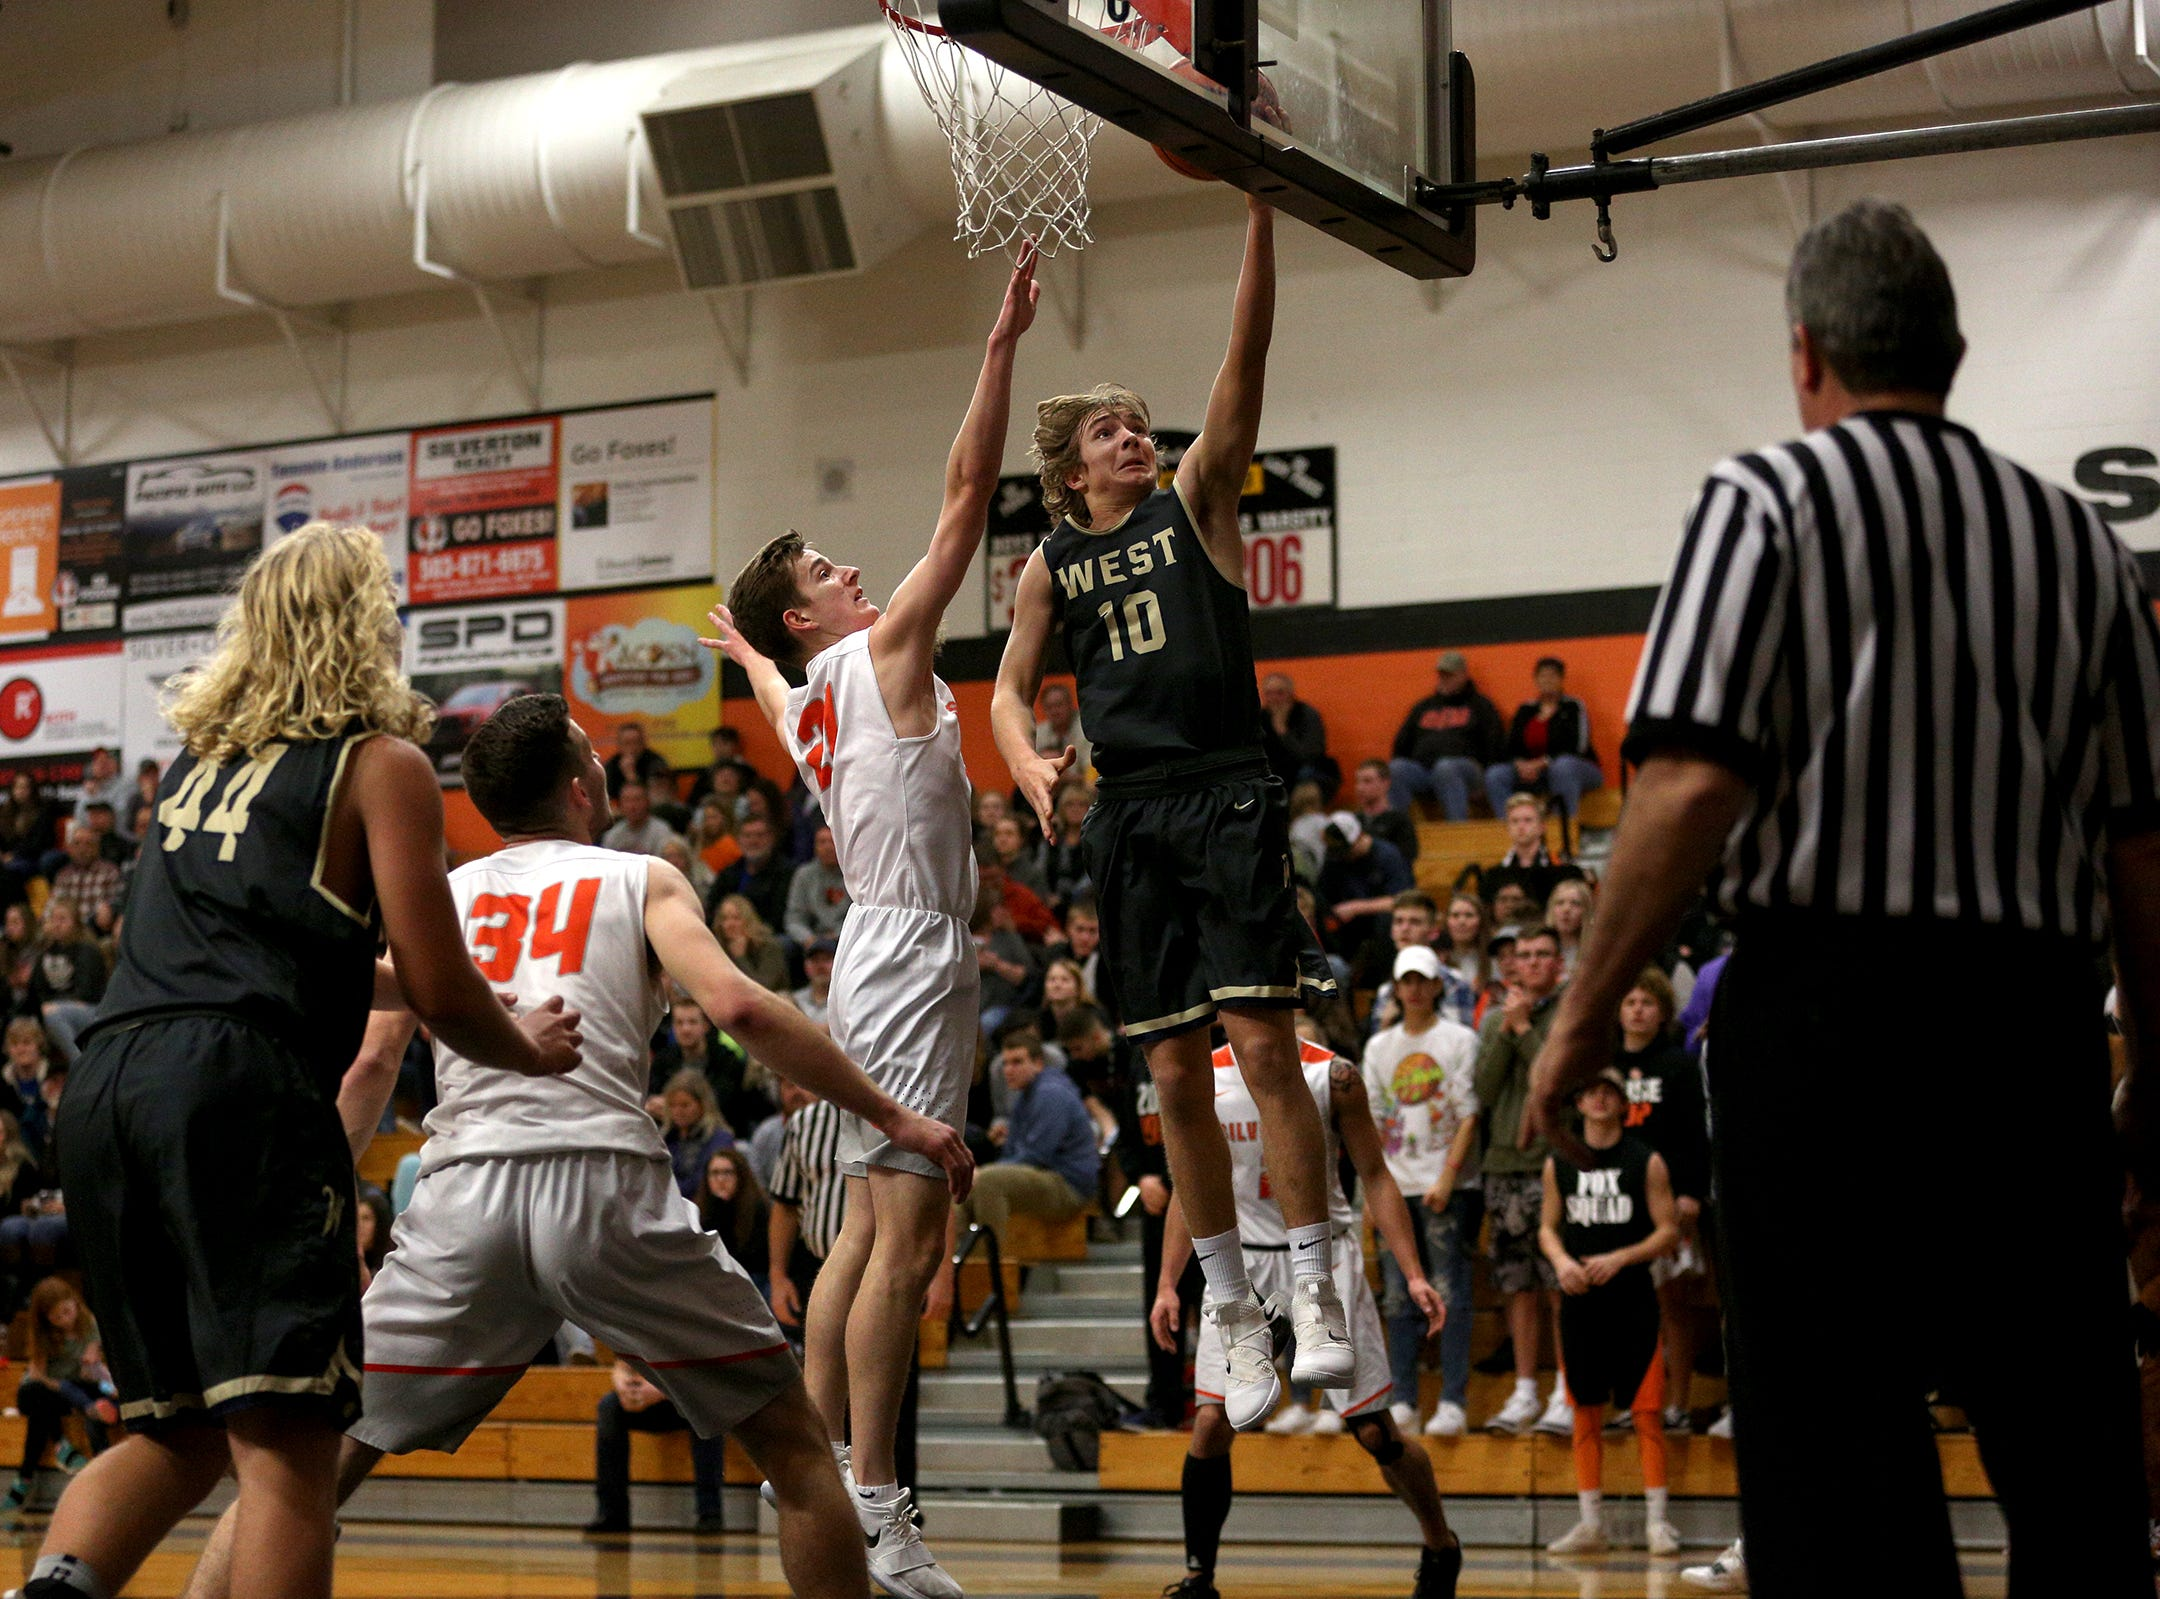 West Albany's Luke Killinger (10) goes up in the paint during the West Albany vs. Silverton High School boys basketball game in Silverton on Friday, Jan. 25, 2019. Killinger finished with 19 points.